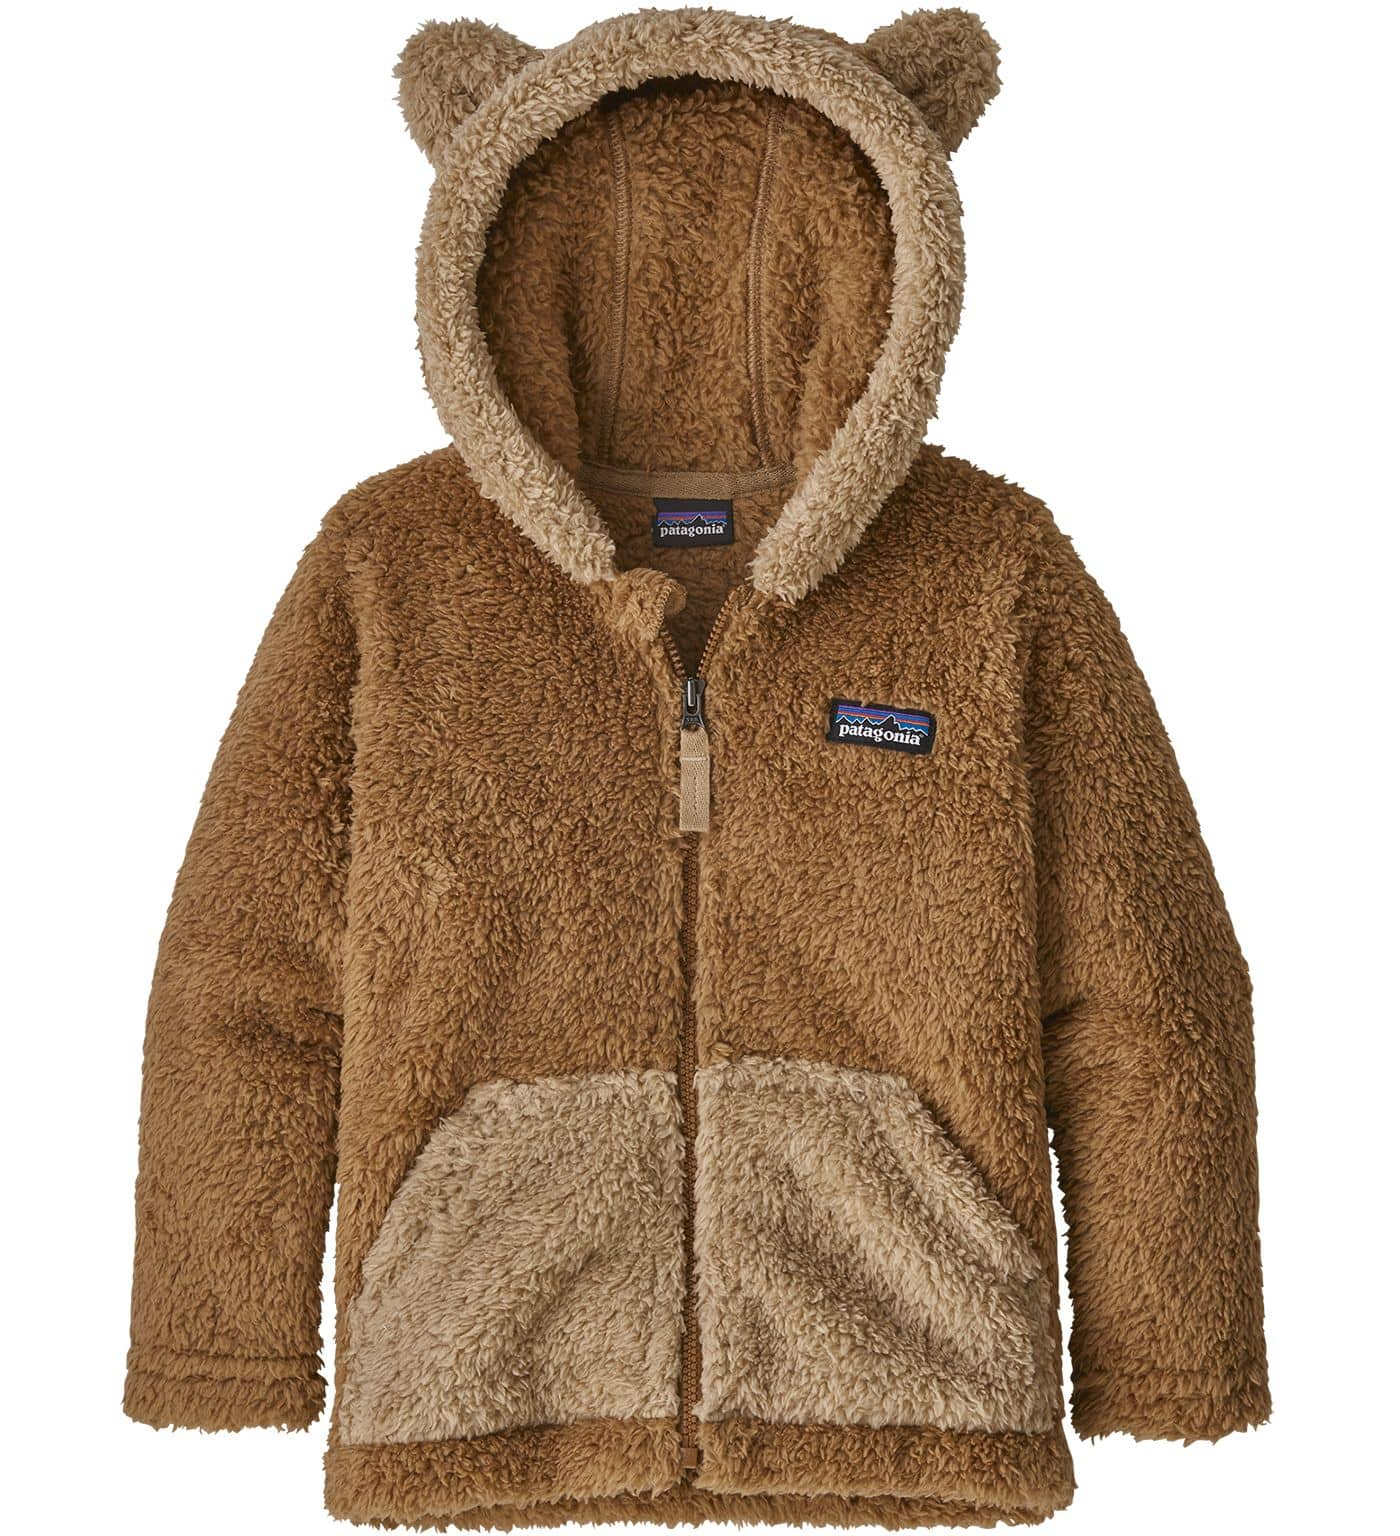 Patagonia Infant Furry Friends Hoodie (2 colors) $27 + Free store pickup at Dick's Sporting Goods